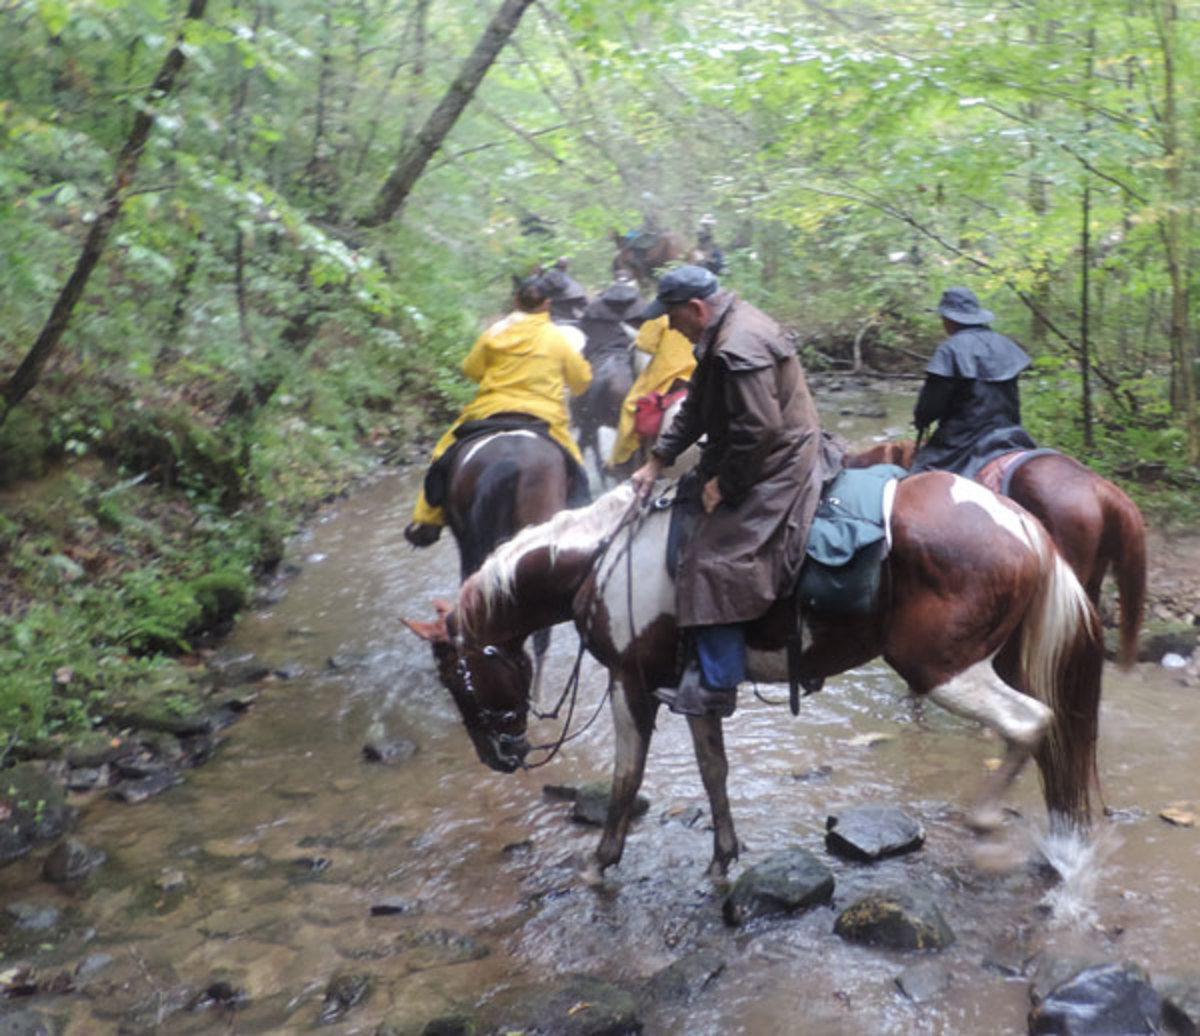 The 35th Annual Sheltowee Trail Ride will be held at Elkins Creek Horse Camp in Pedro, Ohio, adjacent to Wayne National Forest.